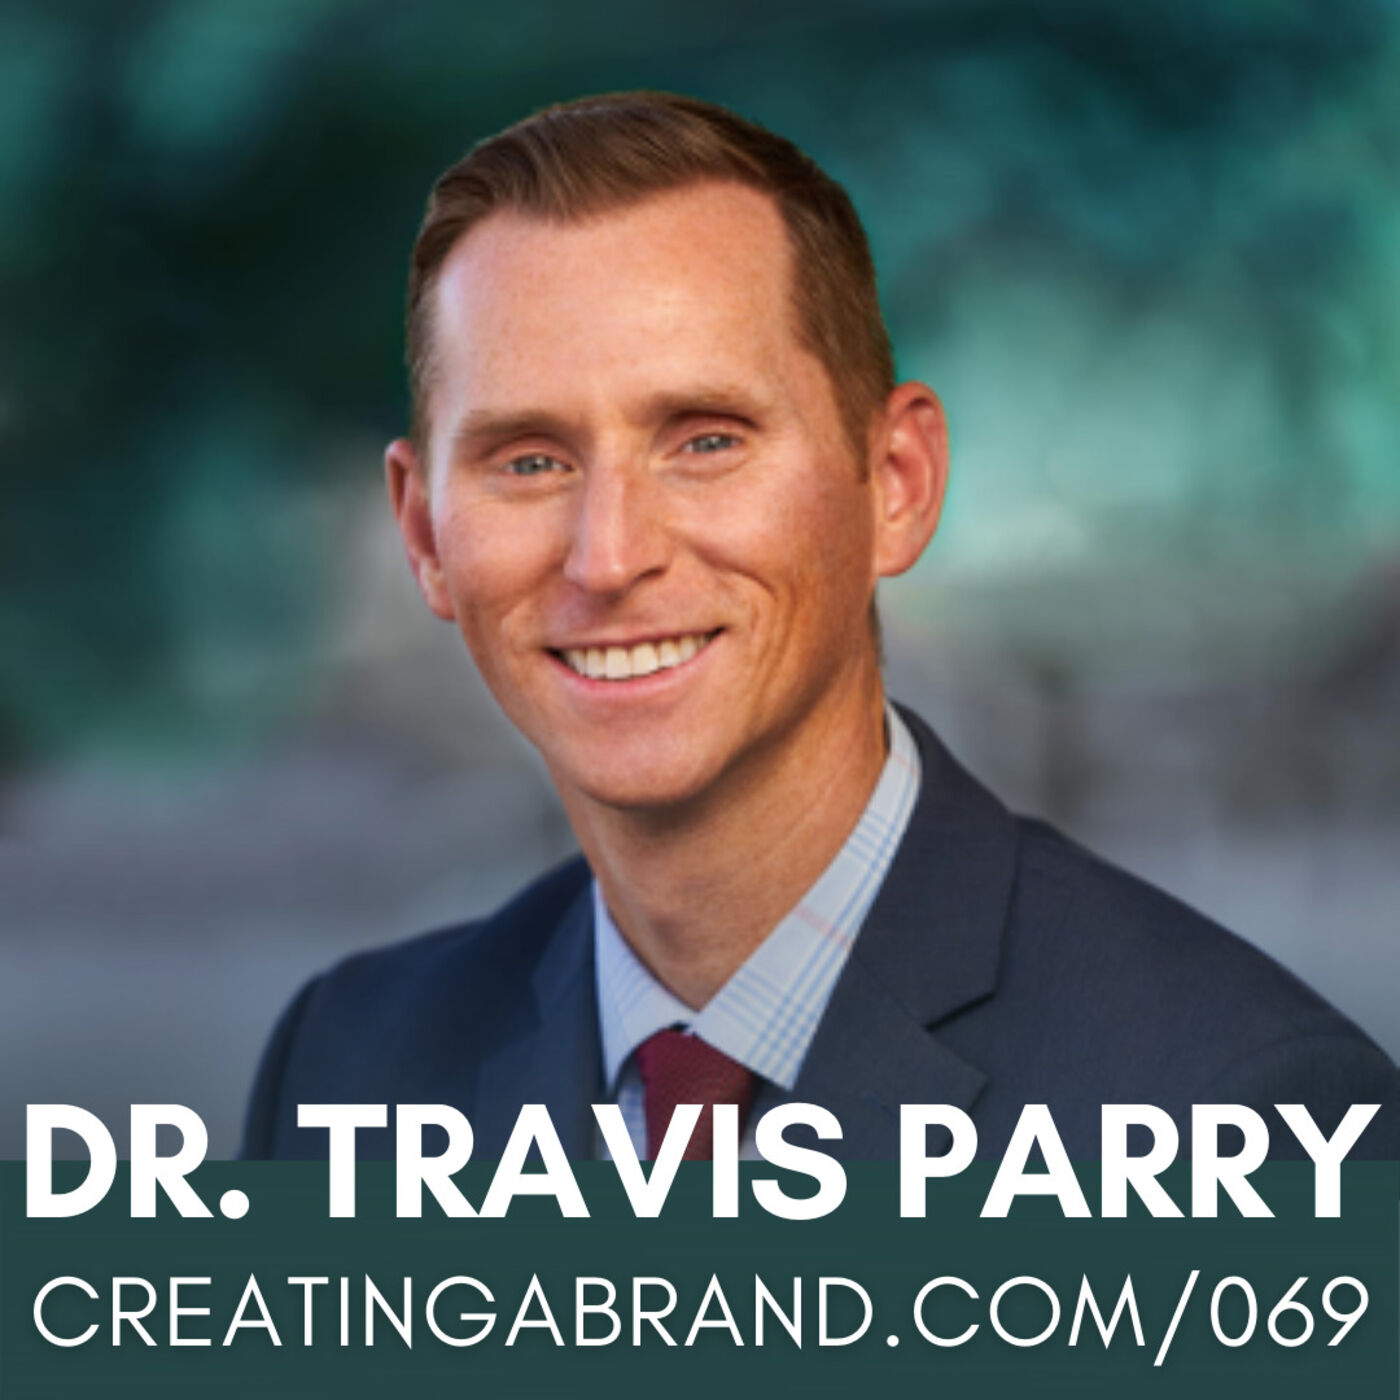 How to Achieve Work-Life Balance in an Overworked World with Travis Parry